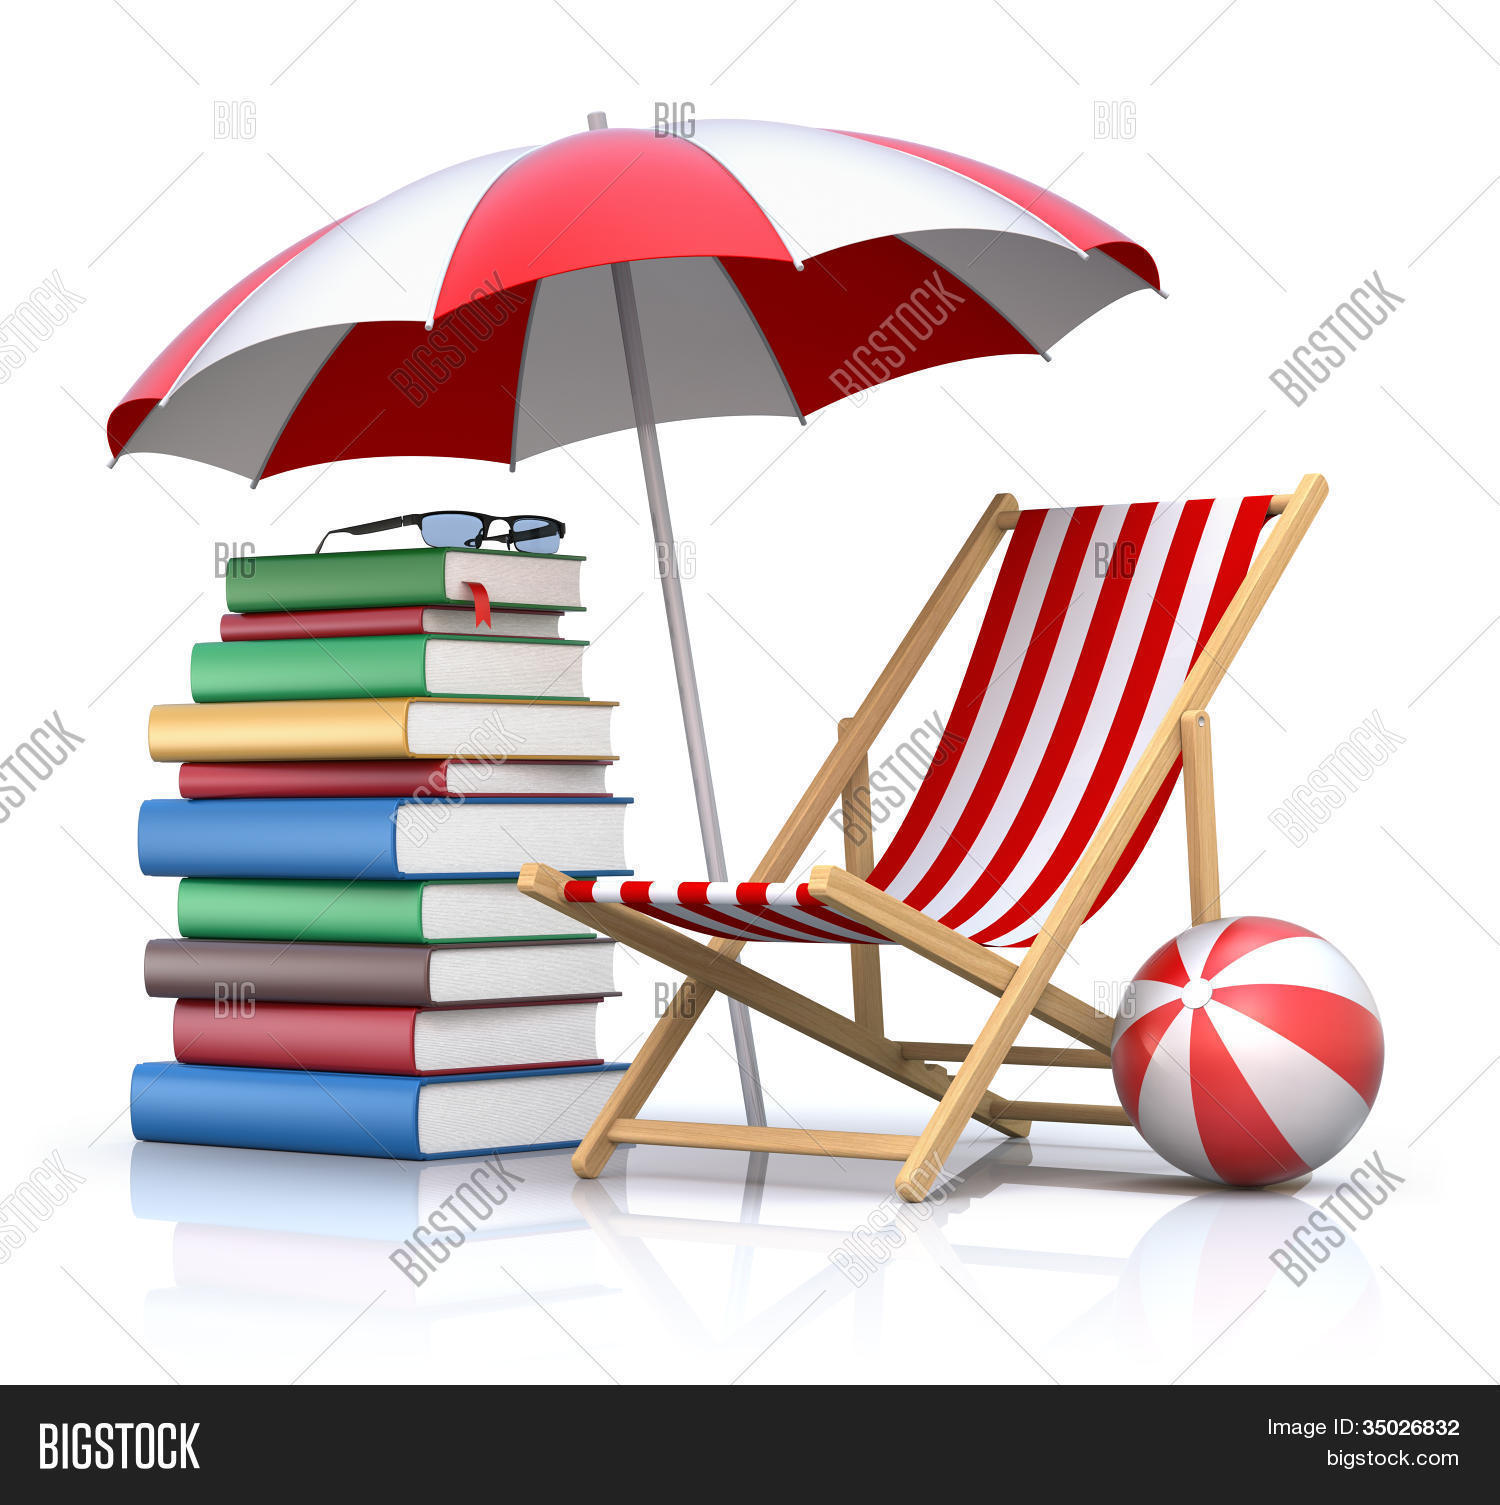 3d,background,ball,beach,book,chair,concept,holiday,illustration,journey,leisure,lifestyle,literature,read,relax,relaxation,retro,sea,summer,summer holiday,sunglasses,tourism,tourist,travel,trip,umbrella,vacation,voyage,white